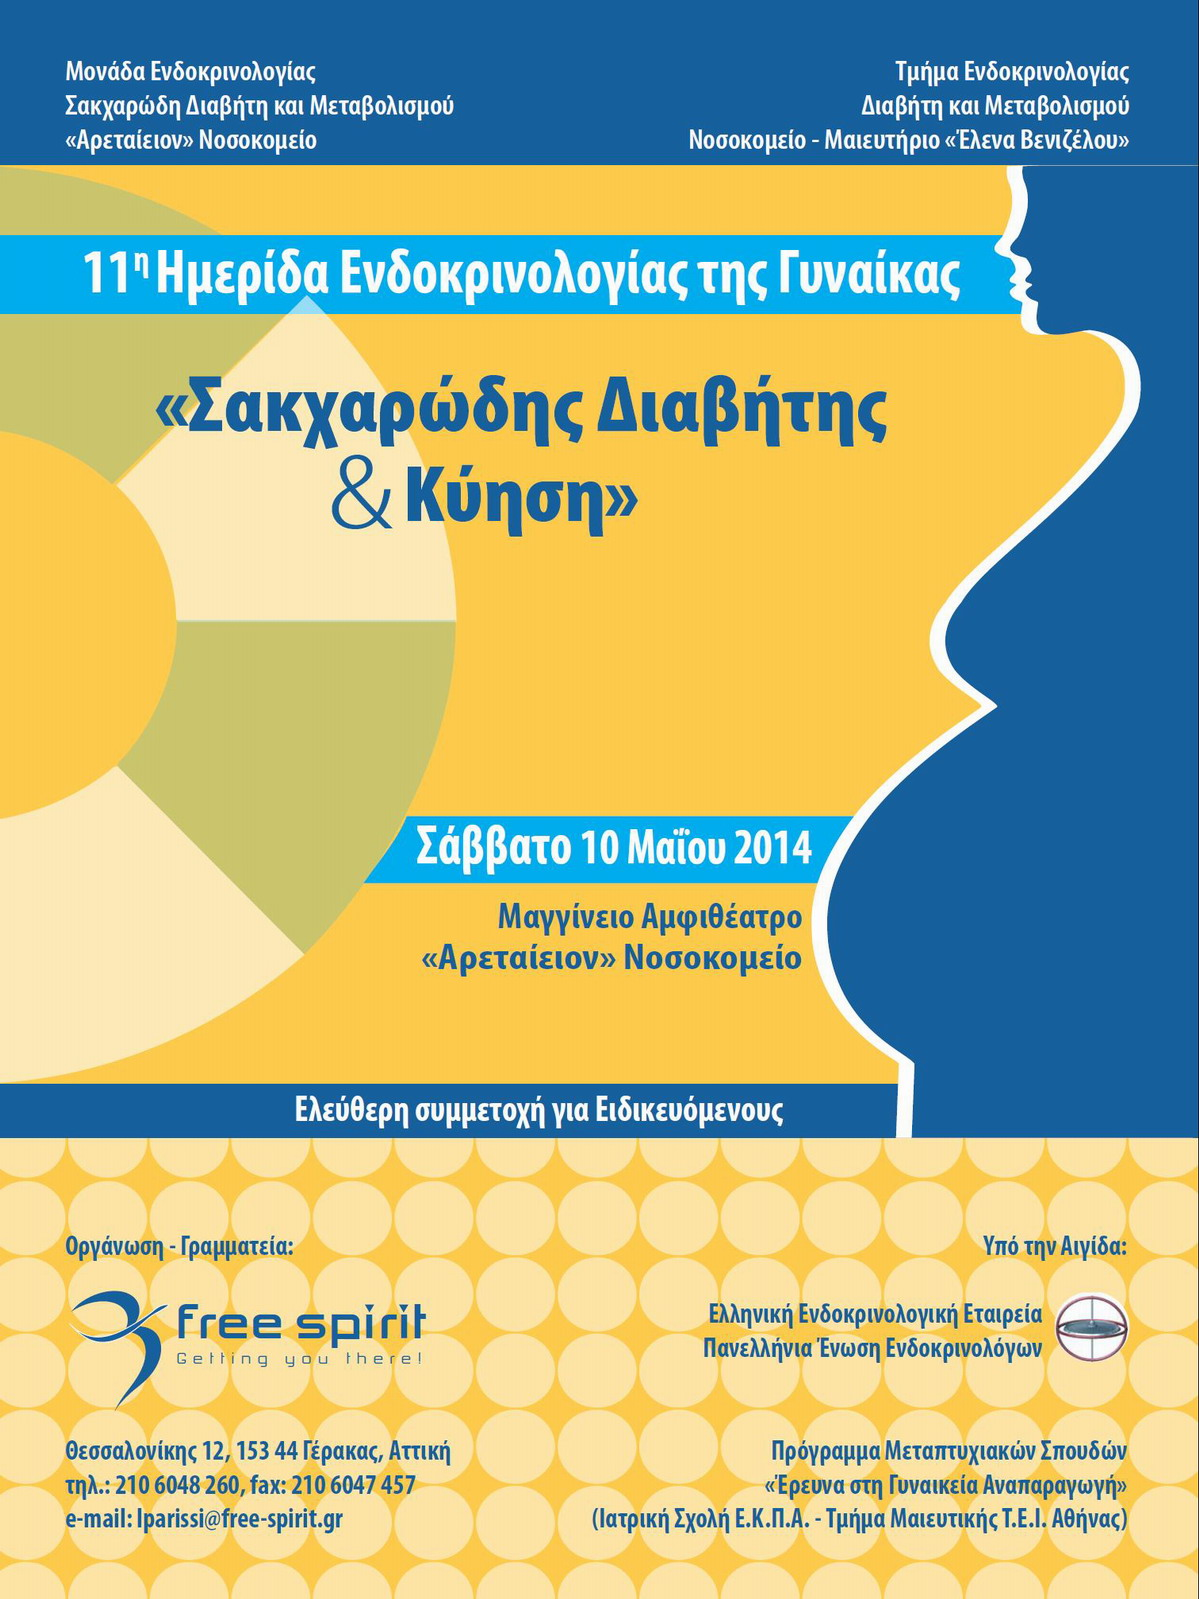 11th Conference of Female Endocrinology